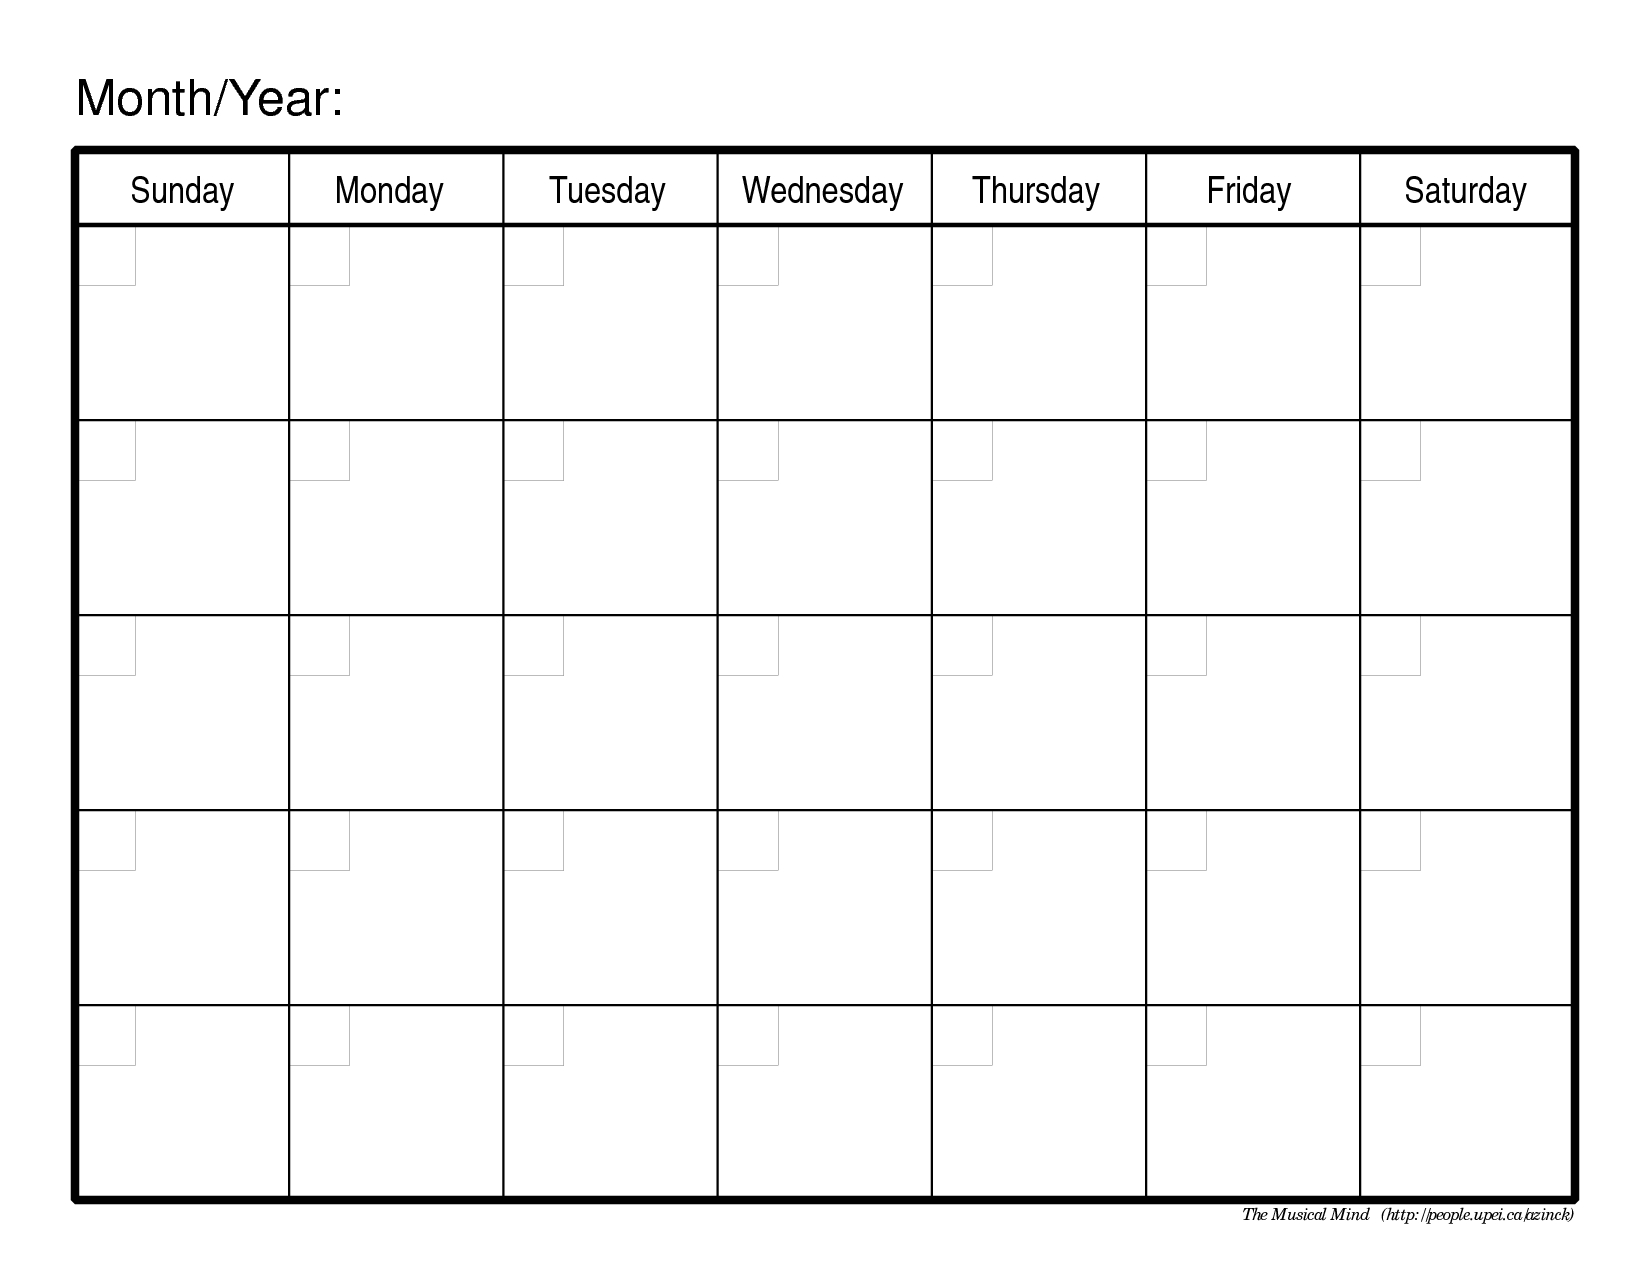 Monthly Calendar Template | Organizing | Monthly Calendar Template with Blank Monthly Calendar Print Out